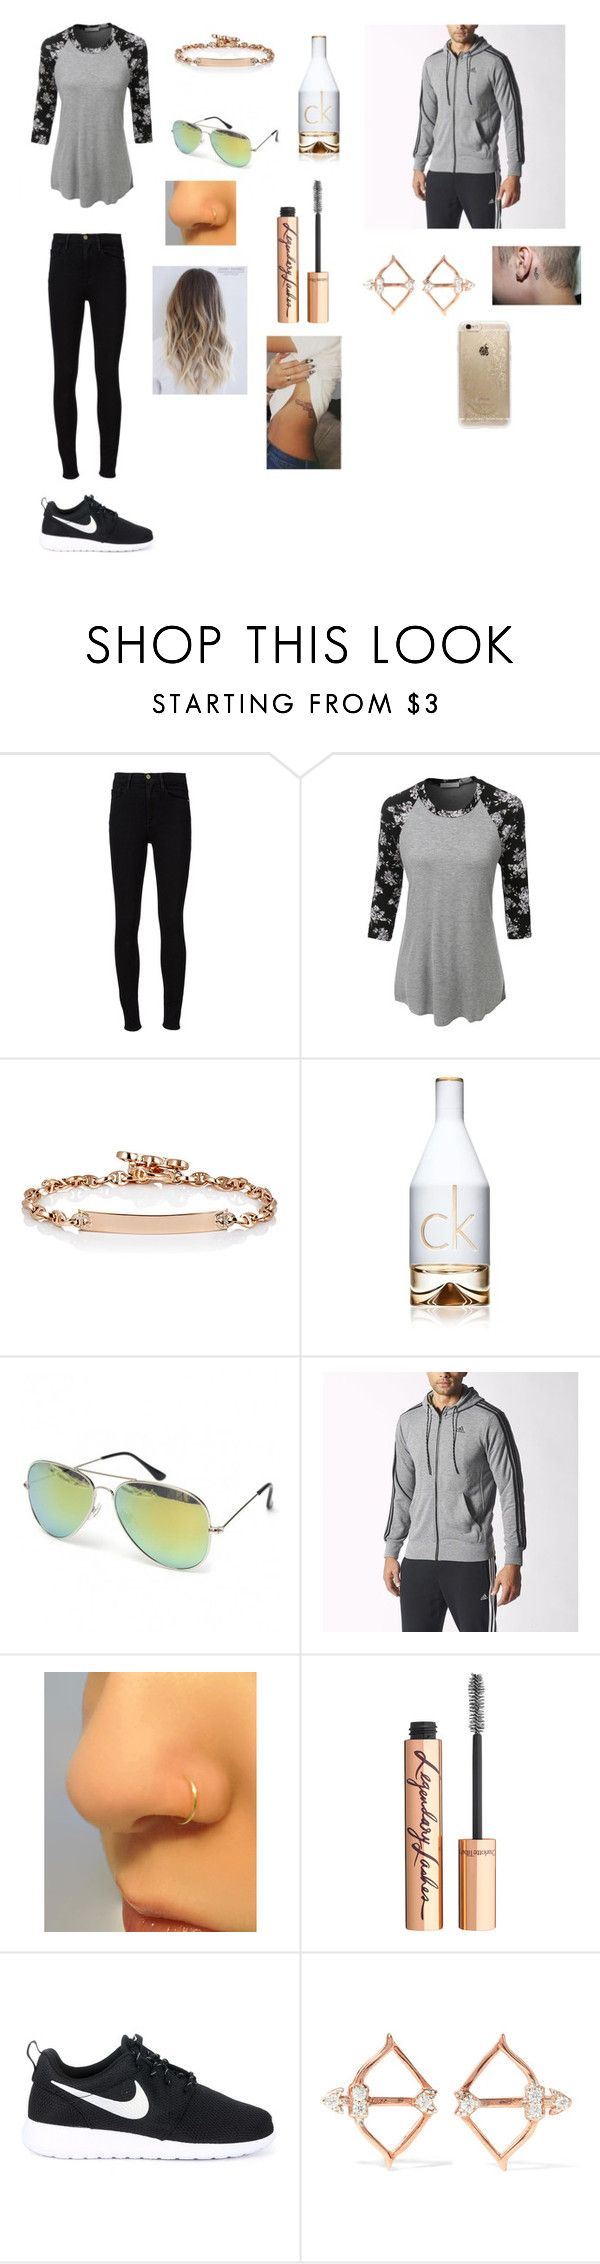 Untitled #227 by katrine-frid on Polyvore featuring LE3NO, Frame Denim, NIKE, Hoorsenbuhs, Aamaya by priyanka, Rifle Paper Co, adidas, Charlotte Tilbury and Calvin Klein